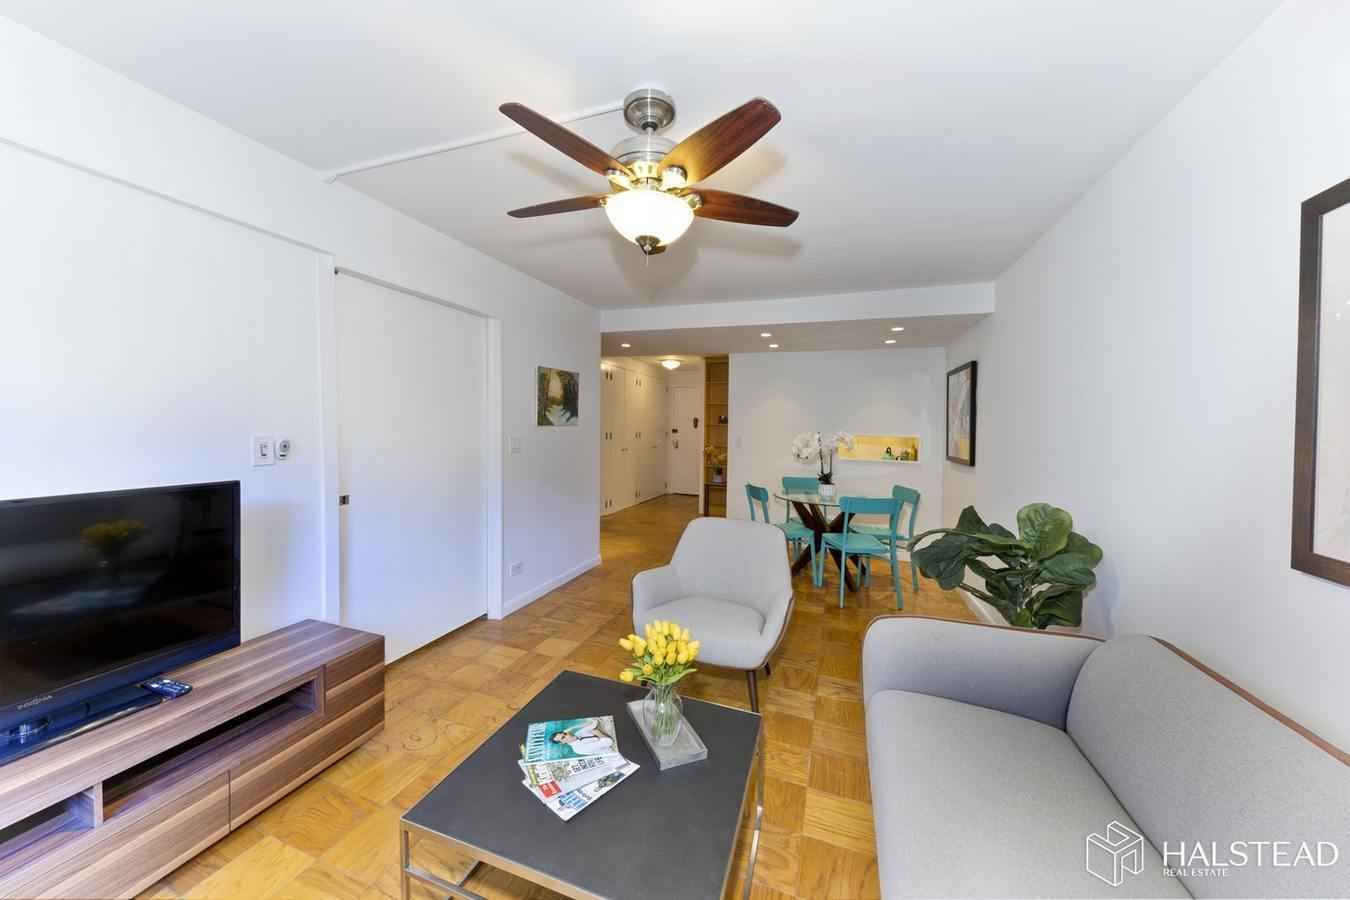 Apartment for sale at 245 East 25th Street, Apt 3L